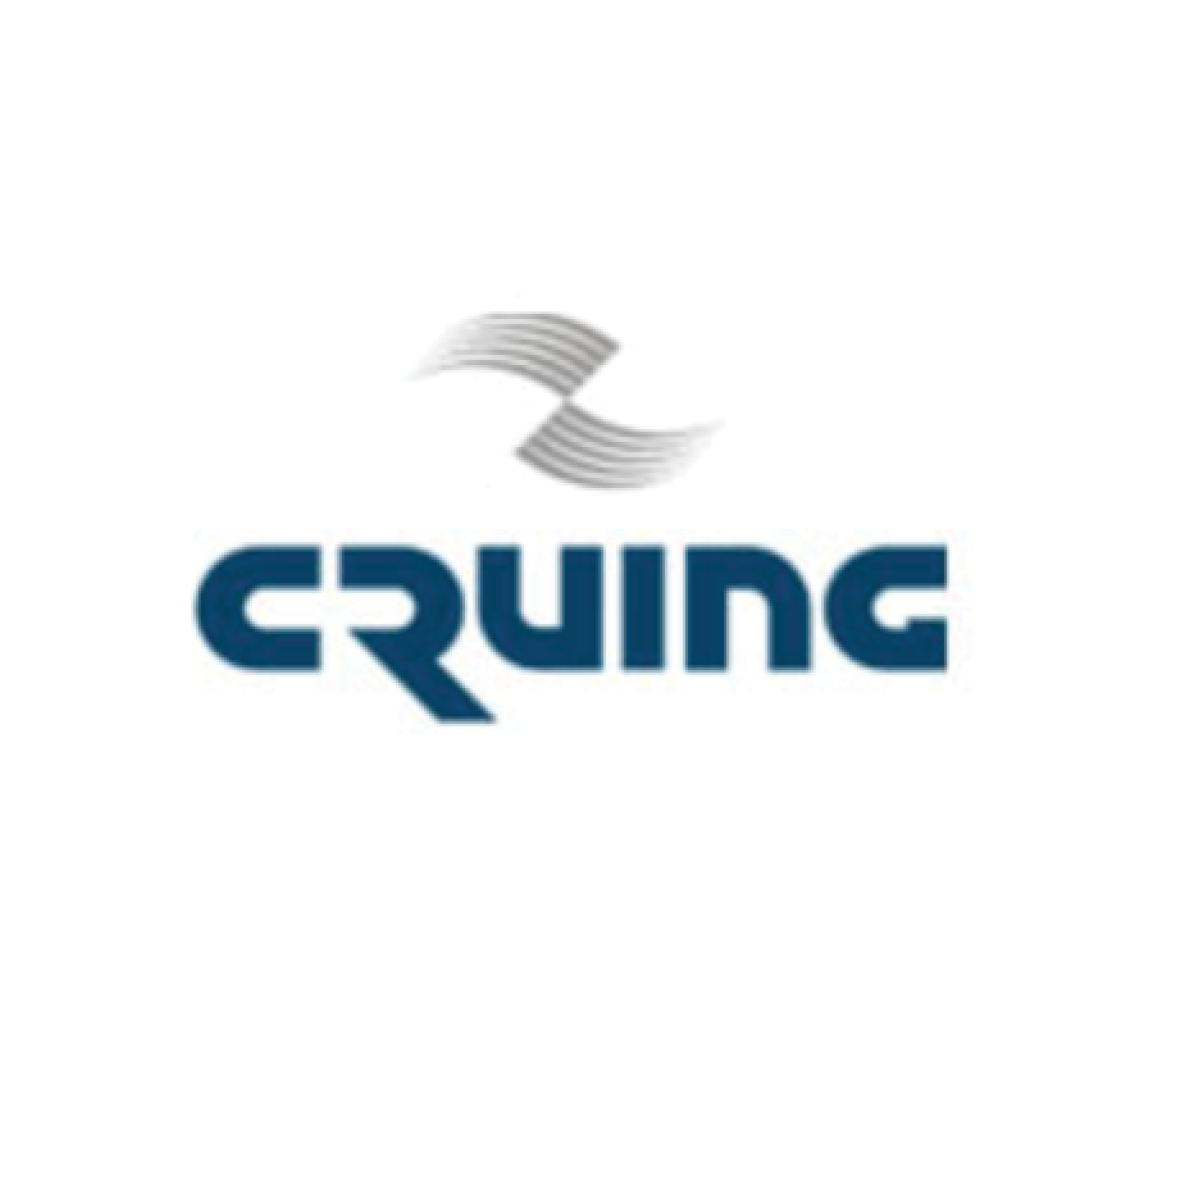 The Cruing Group is a leading manufacturer of diamond cutting tools for Composites, Metals, Wood, Plastics and Resins machining.